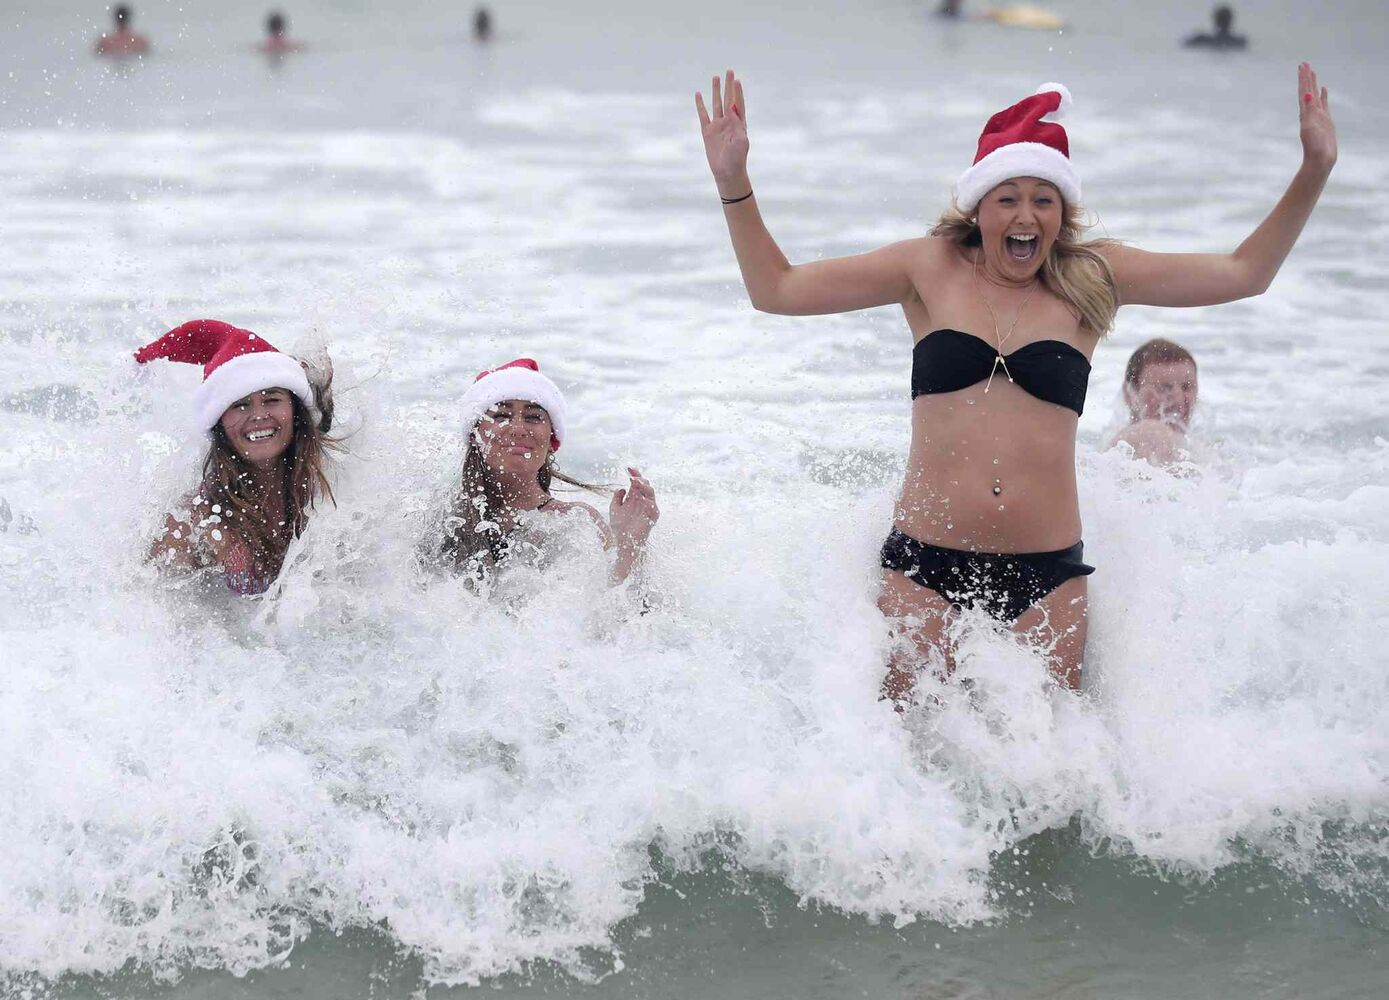 What better way to mark Christmas than take a dip in the ocean, in Australia? Lucy O'Grady, Tanya O'Grady and Lid O'Grady, all from Birmingham in the United Kingdom, splash around at Bondi Beach as they celebrate Christmas Day in Sydney. (The Associated Press)